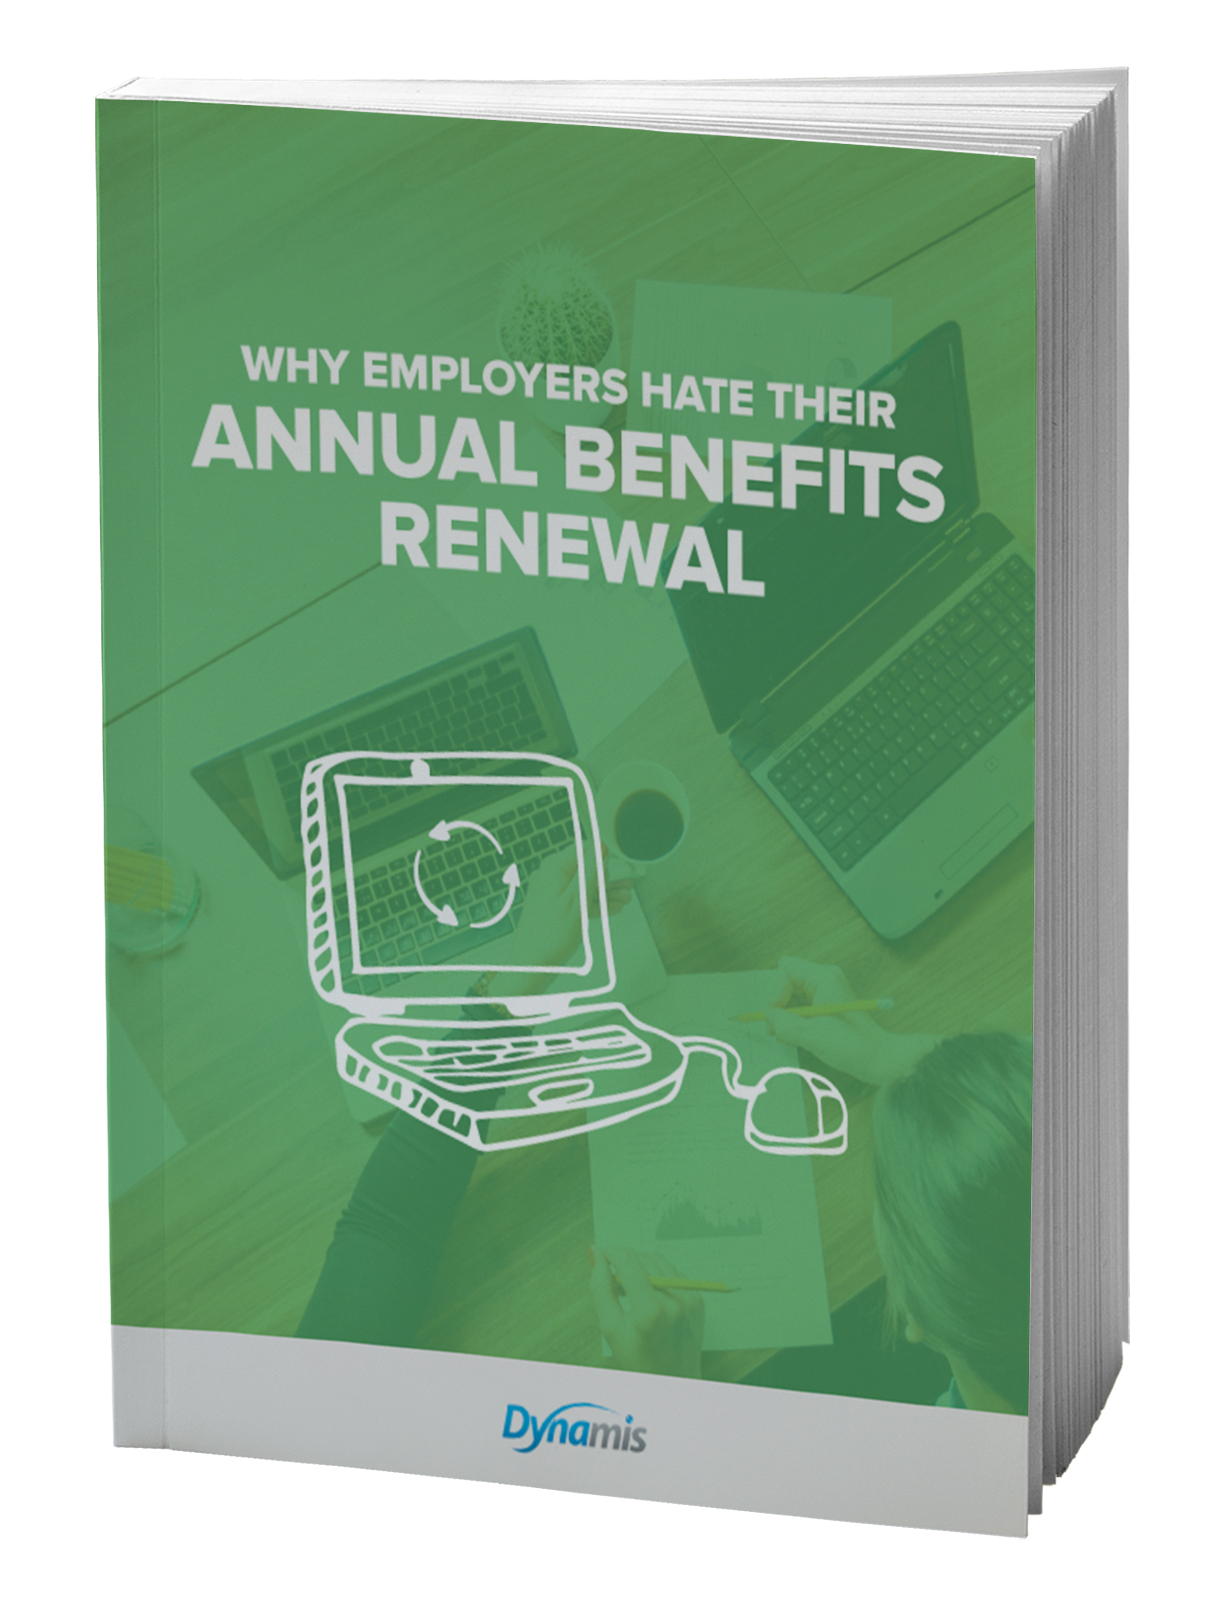 Why employers hate their annual benefits renewal